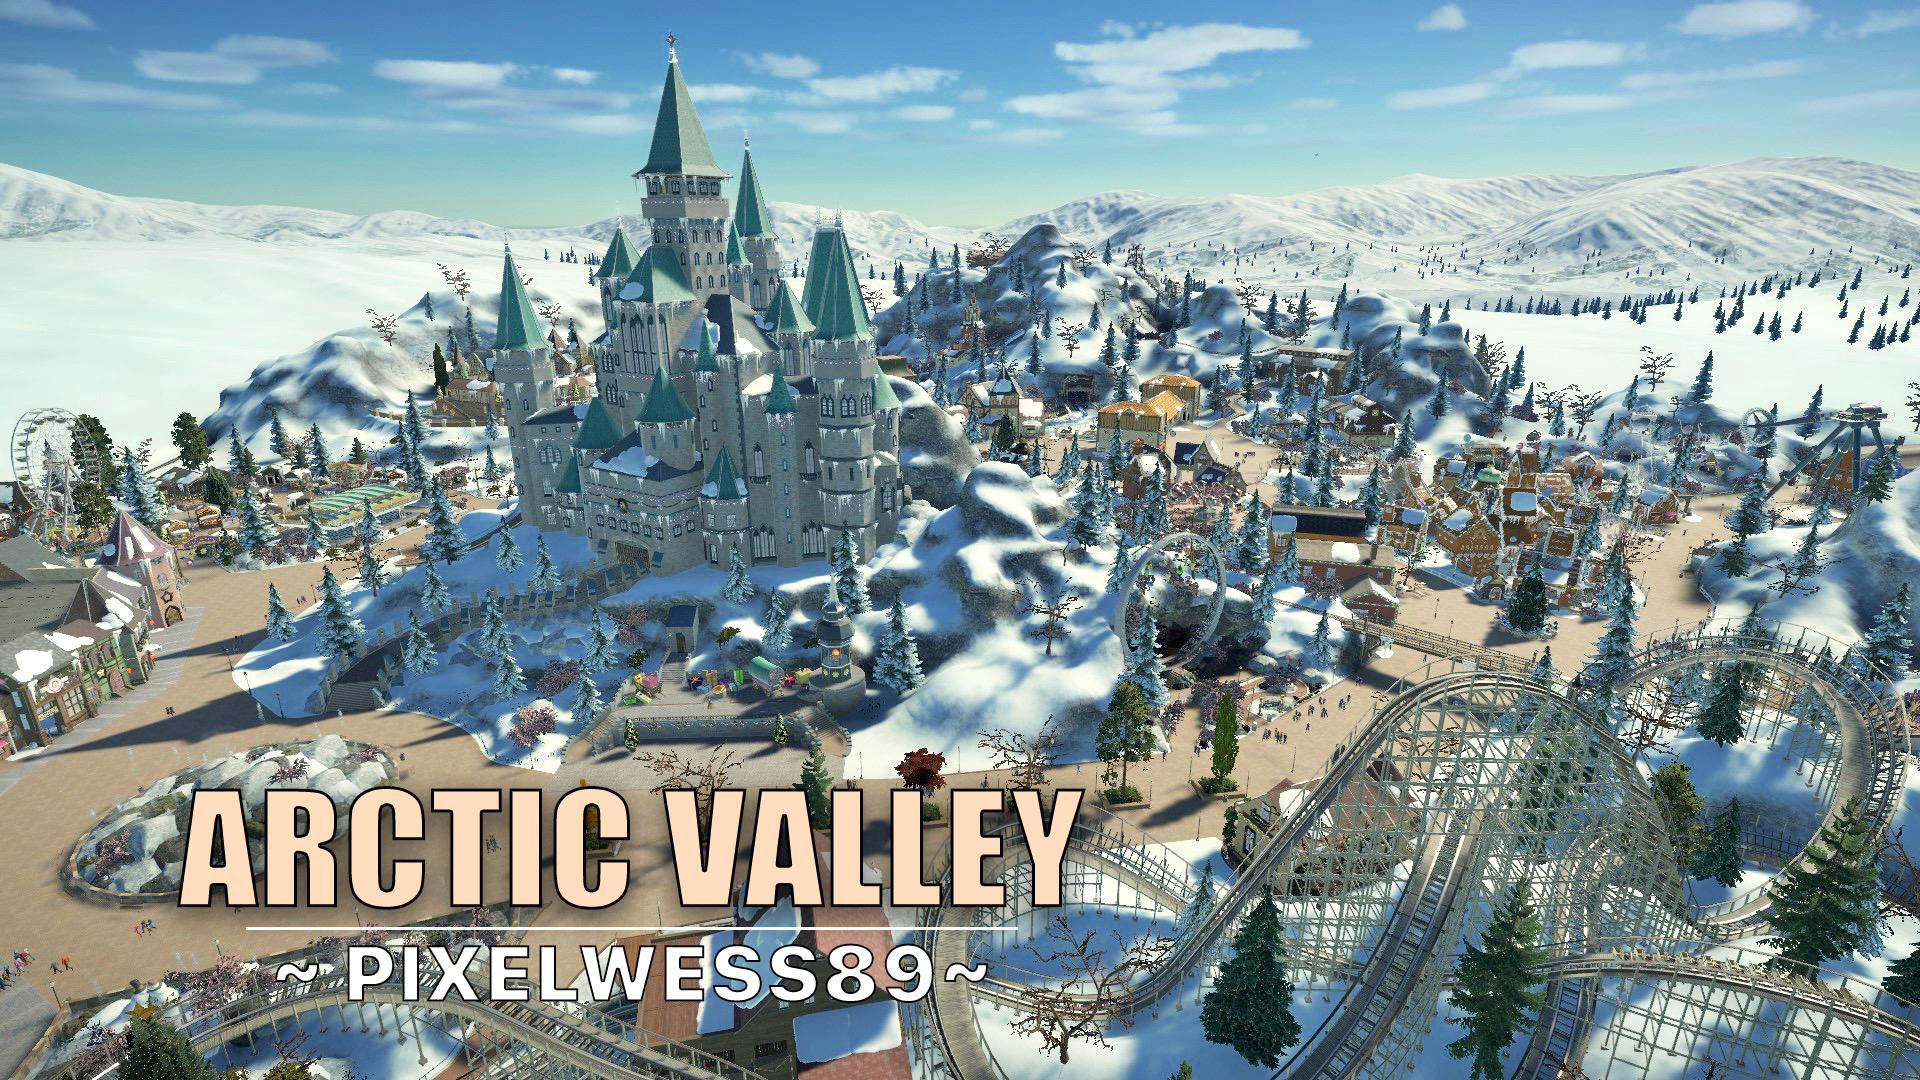 Arctic valley video